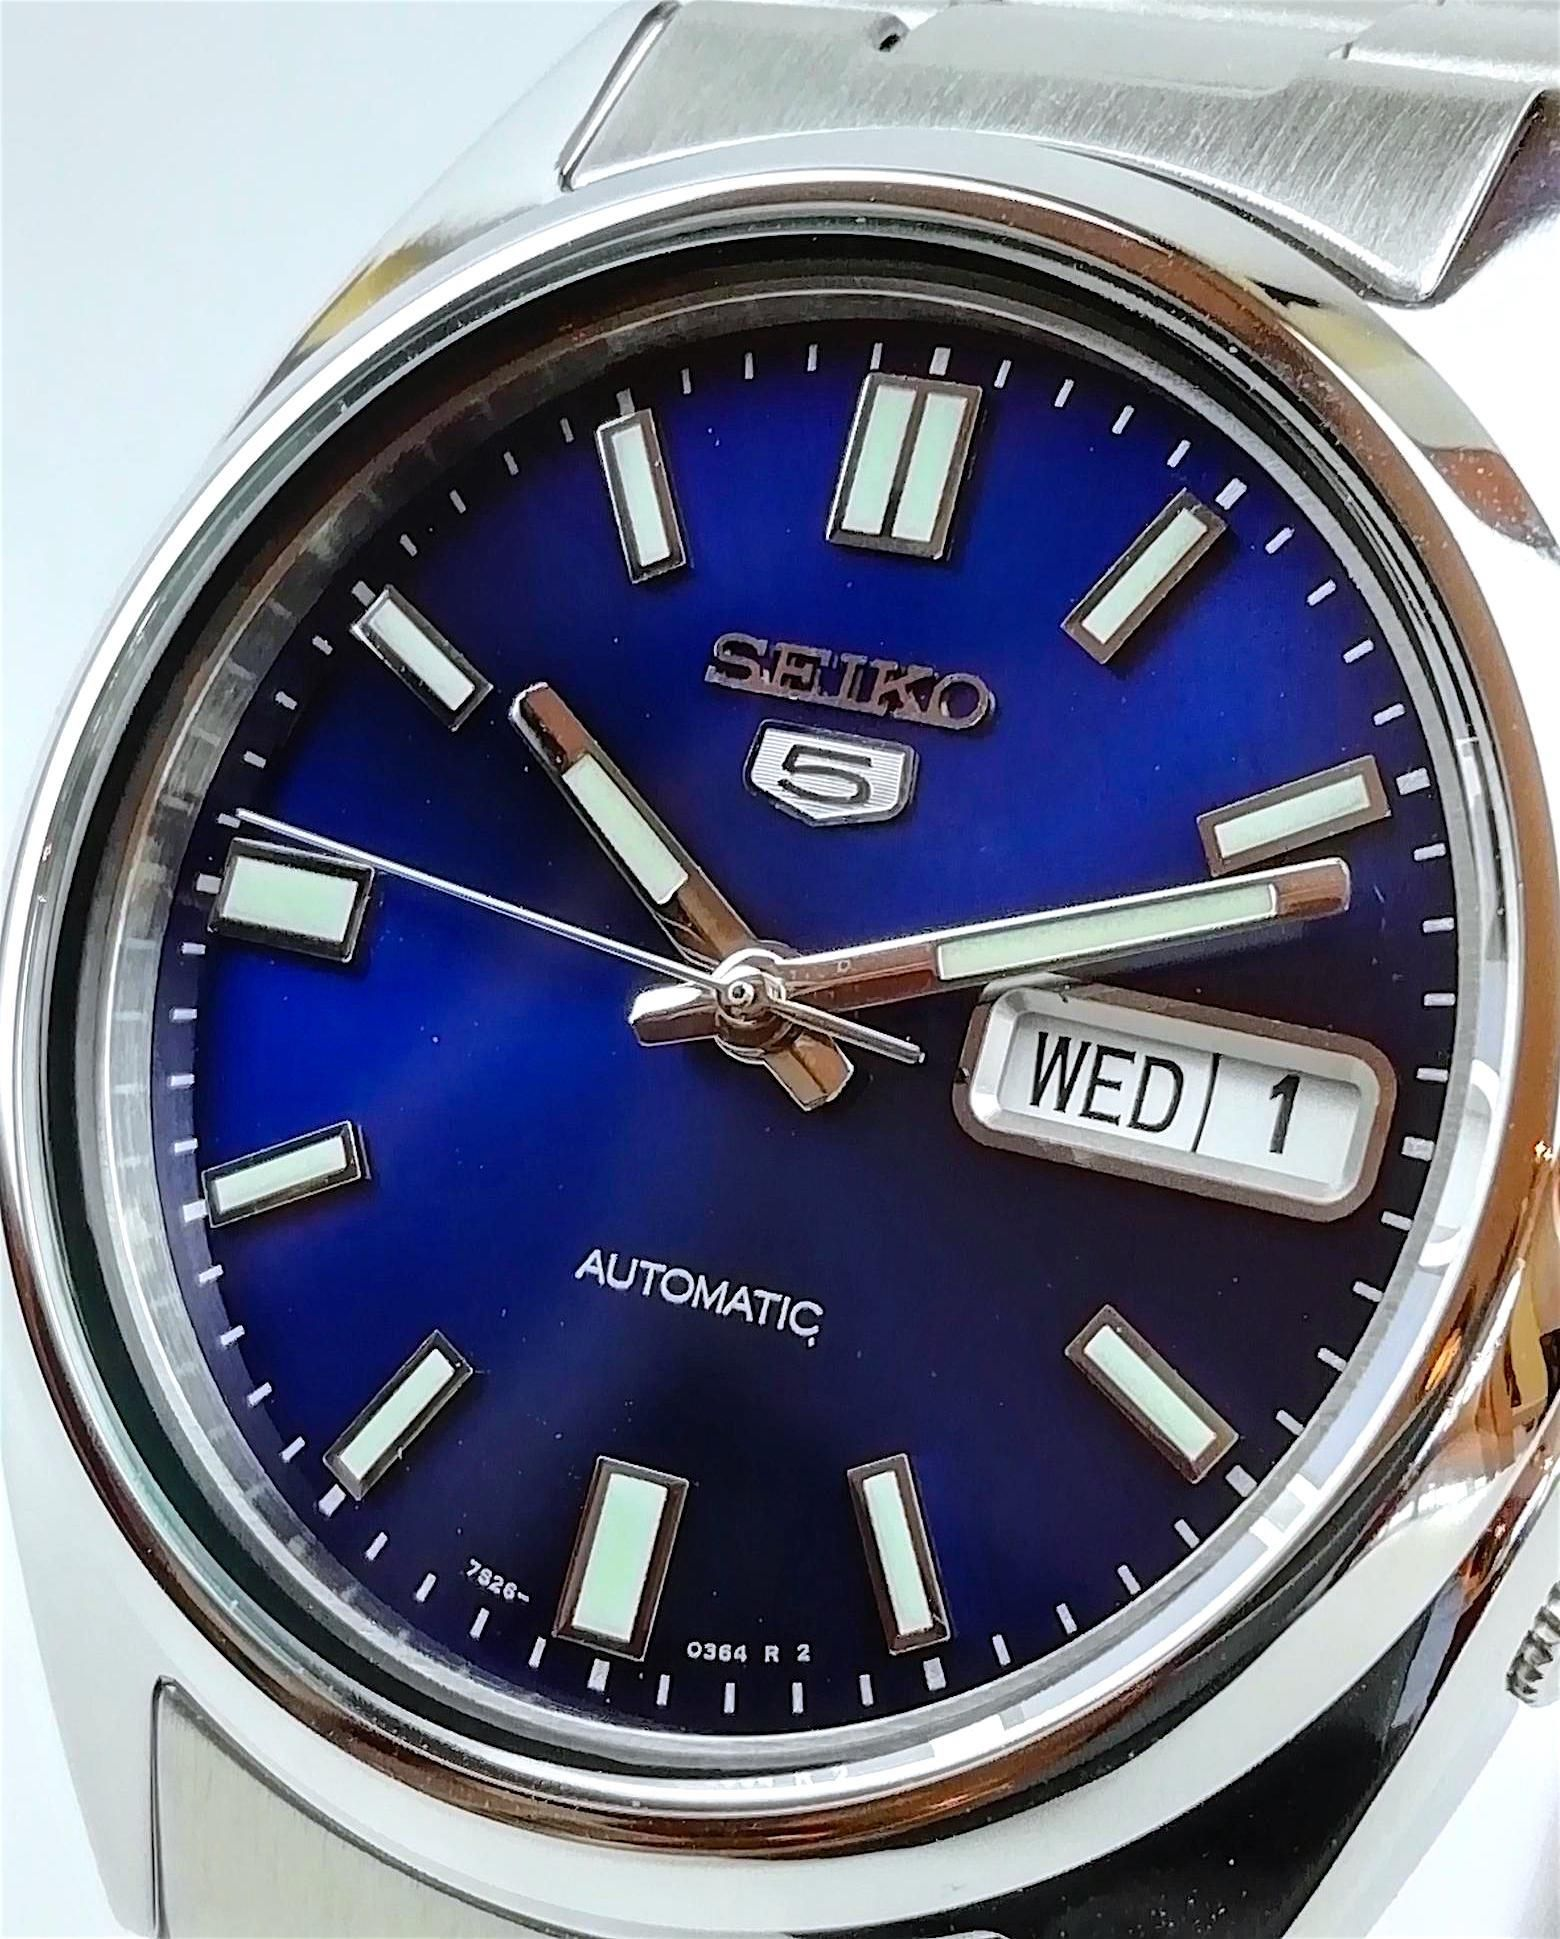 262230188 Seiko 5 Automatic Blue Dial Stainless Steel Men's Watch SNXS77 - WatchNation